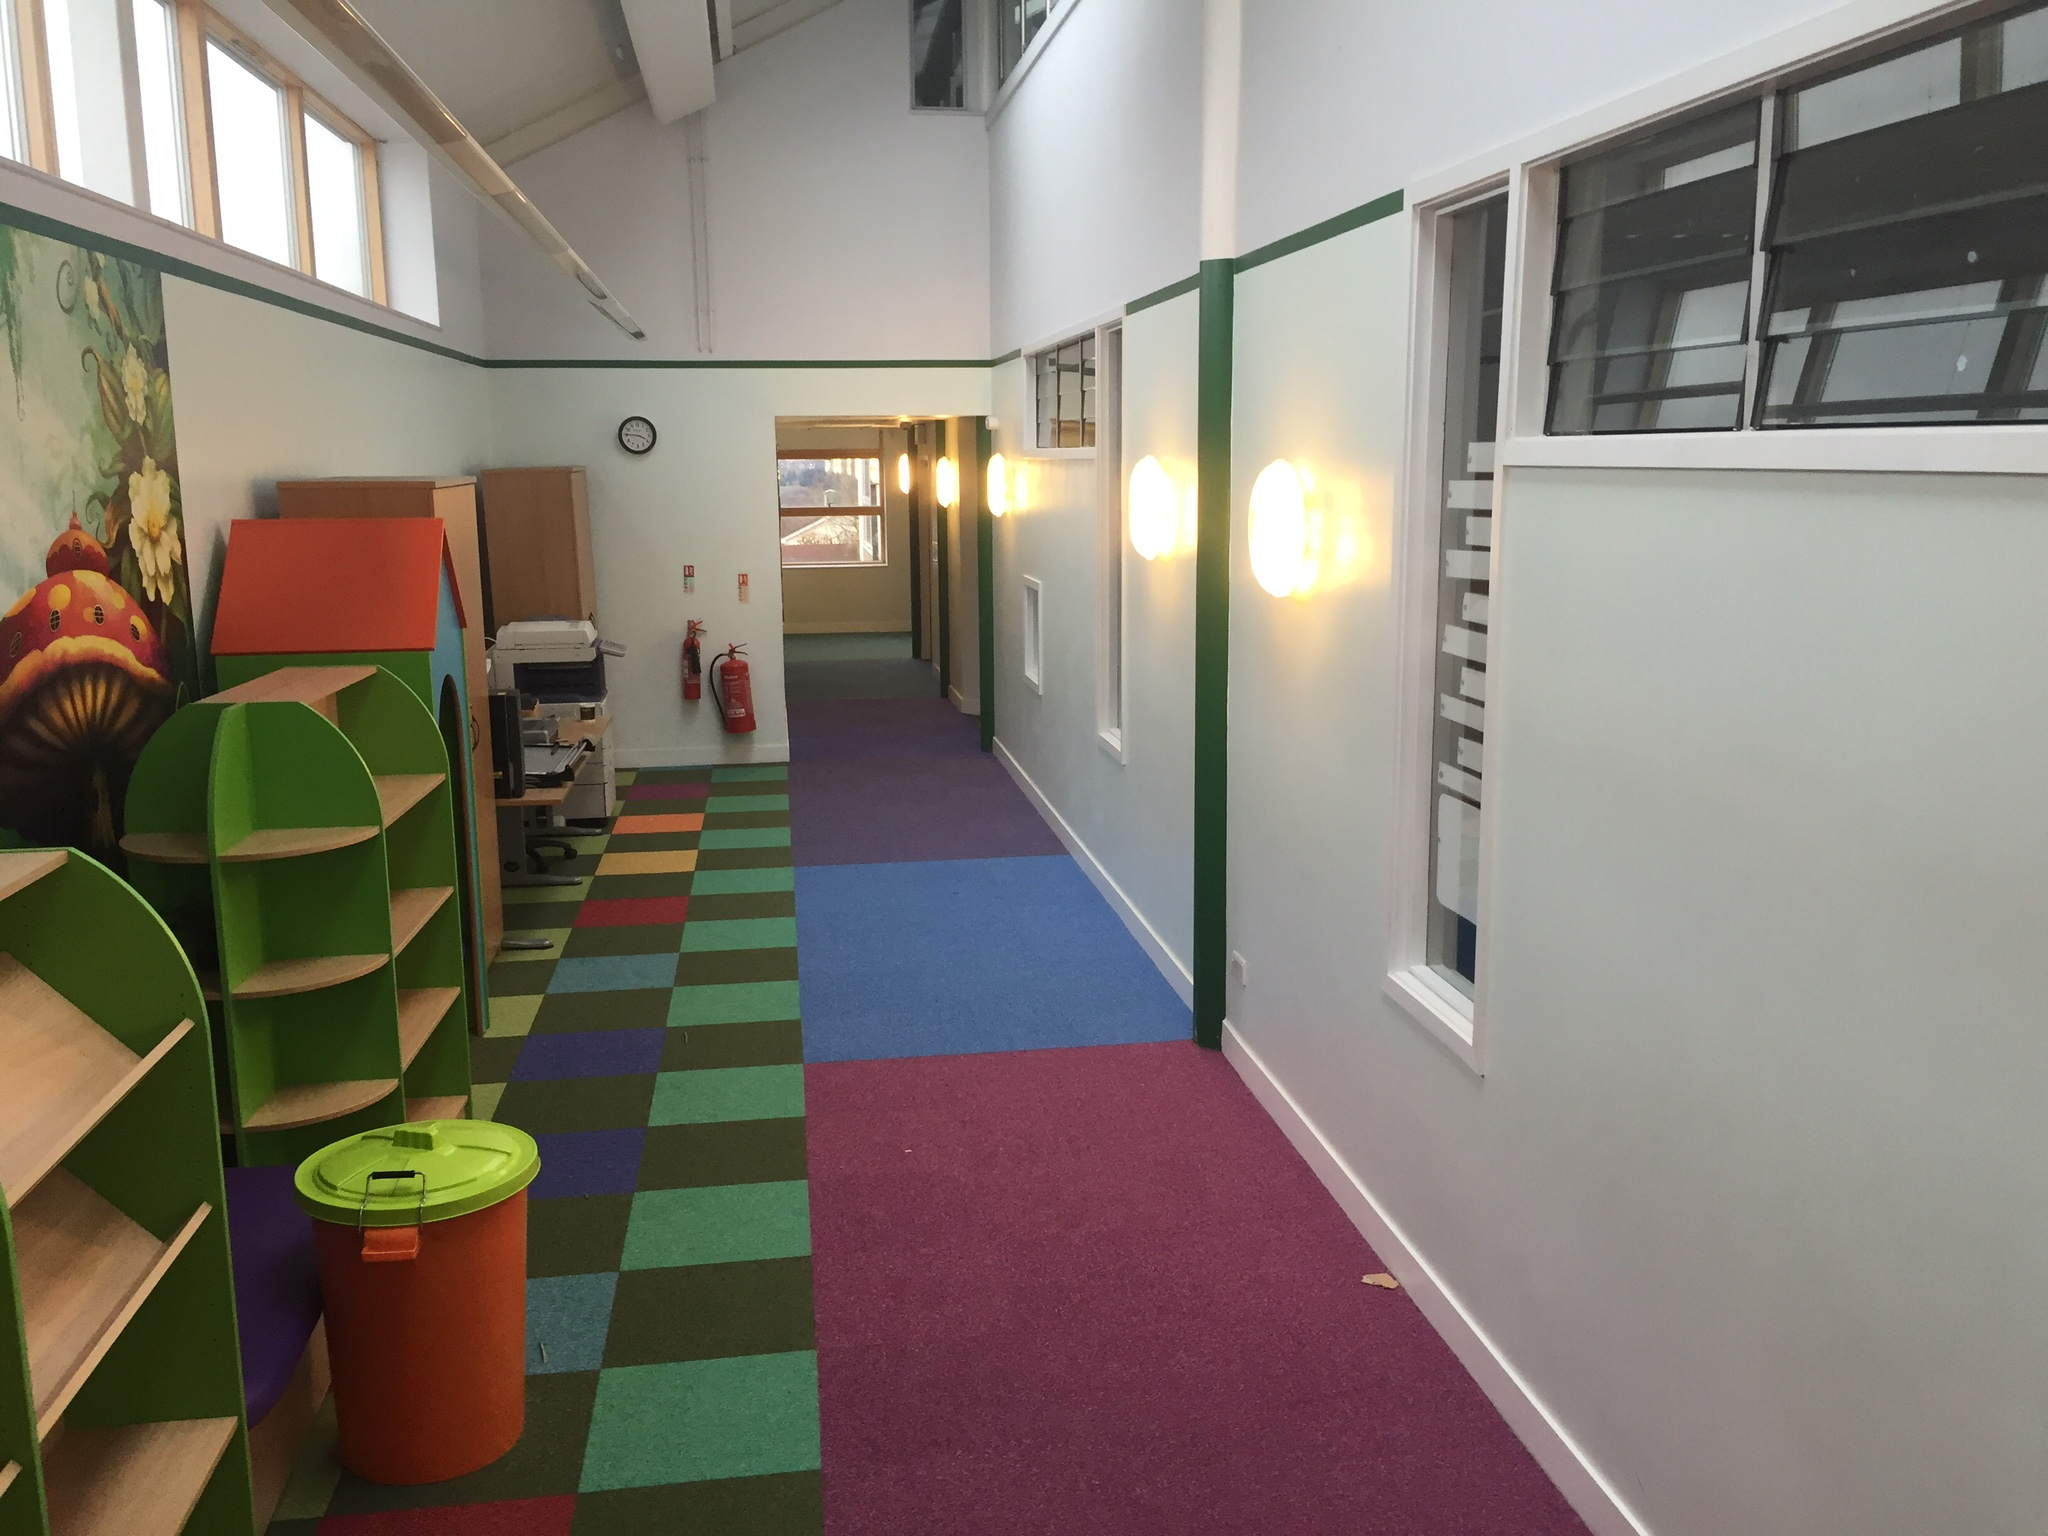 Carpet-Fit-Wales-Aberdare-South-Wales-Flooring-Carpets-LVT-Vinyl-Cleaning-Professional-School-Colourful schools